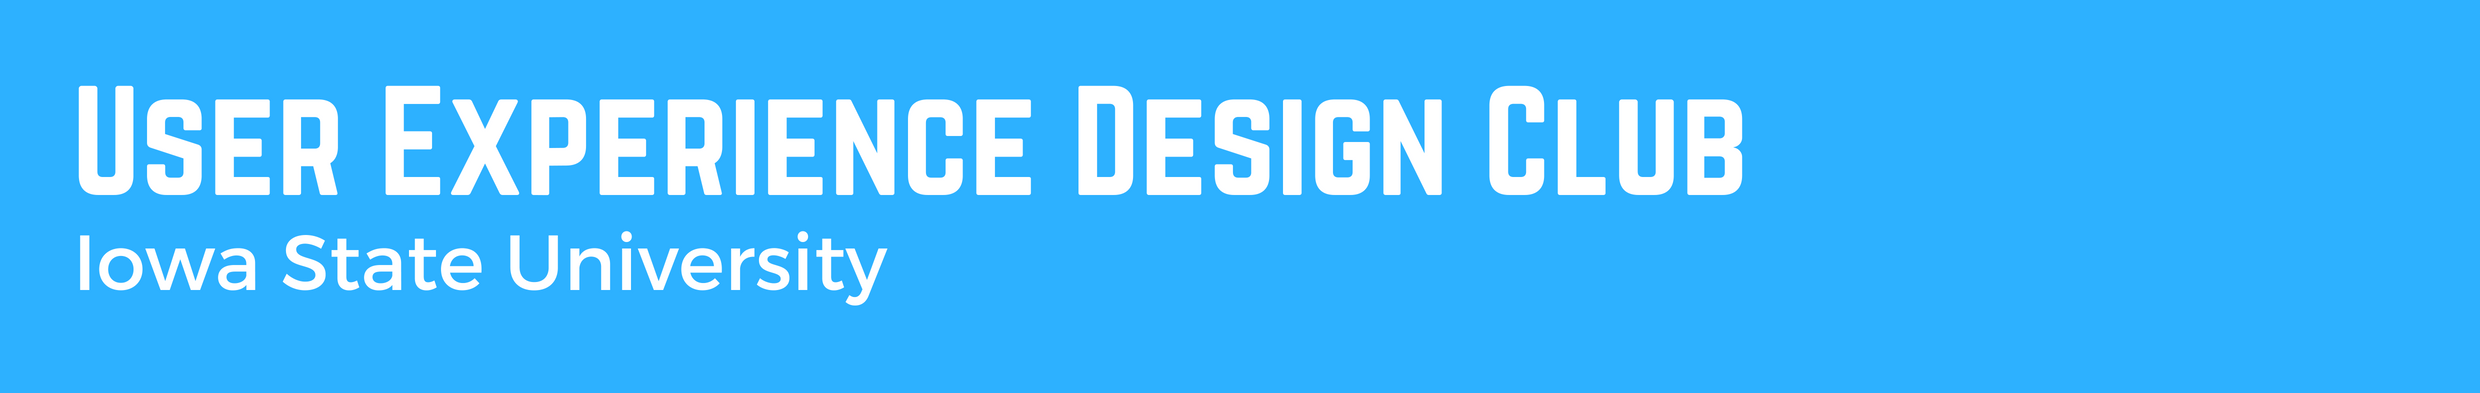 User Experience Design Club Header